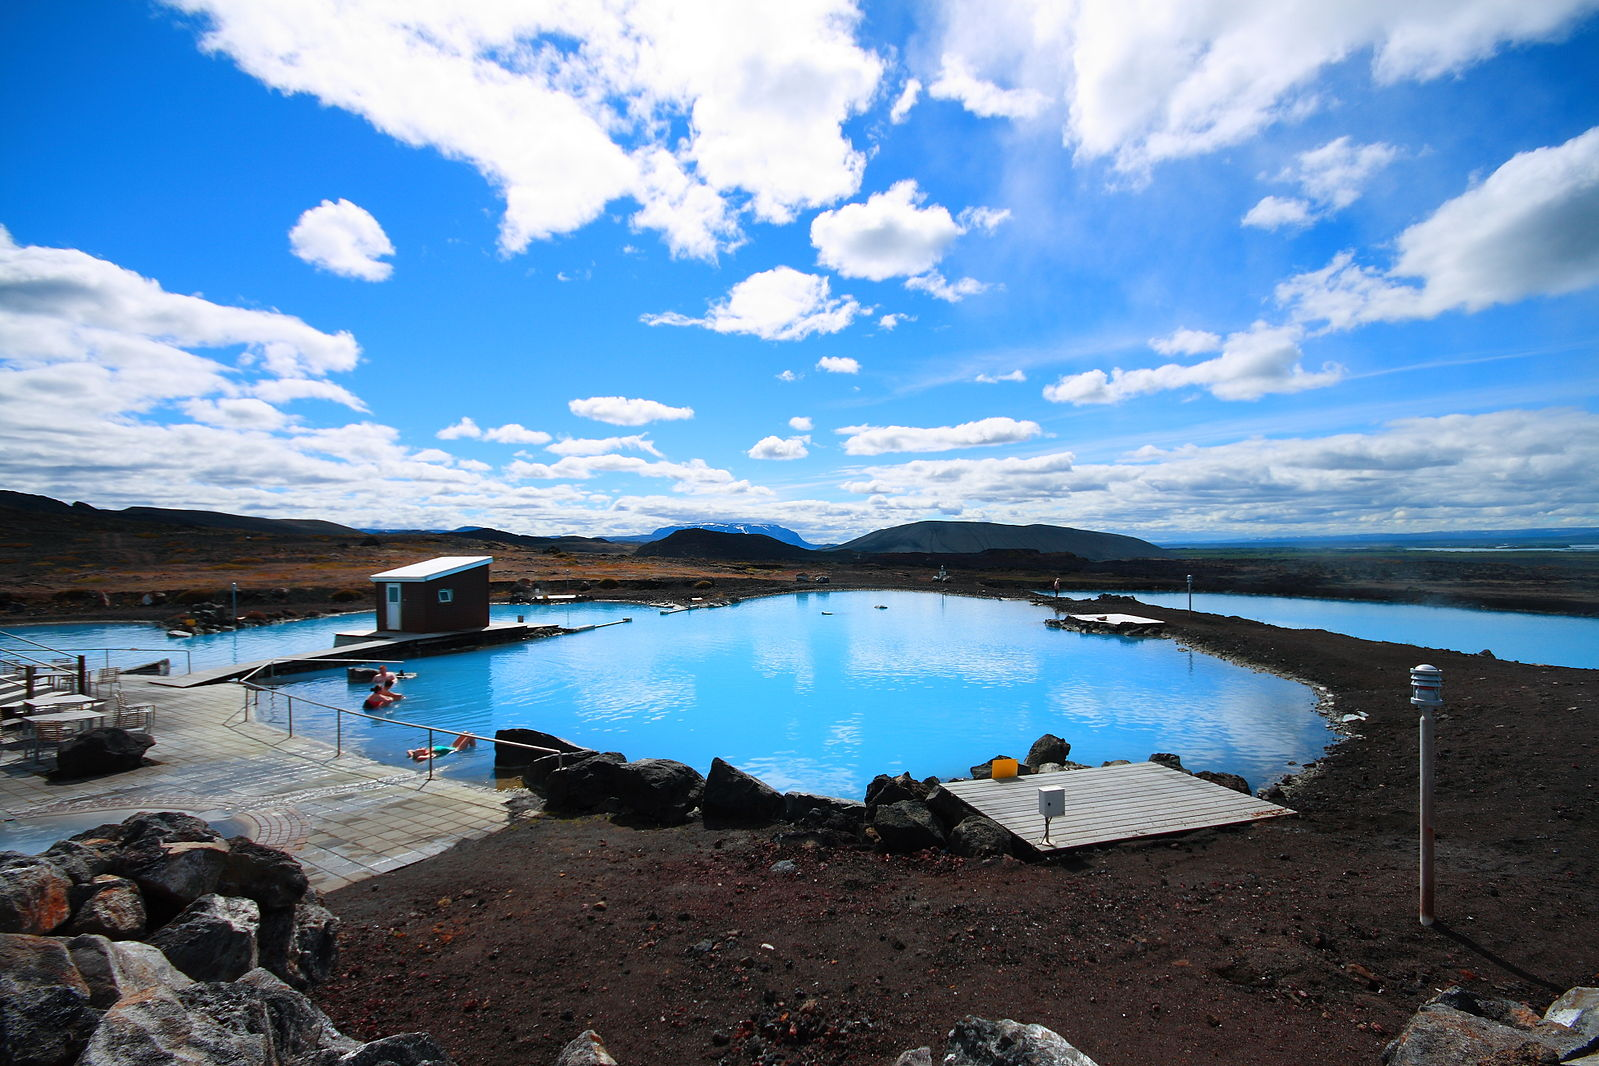 Phoe Travels to Myvatn Nature Baths in Iceland